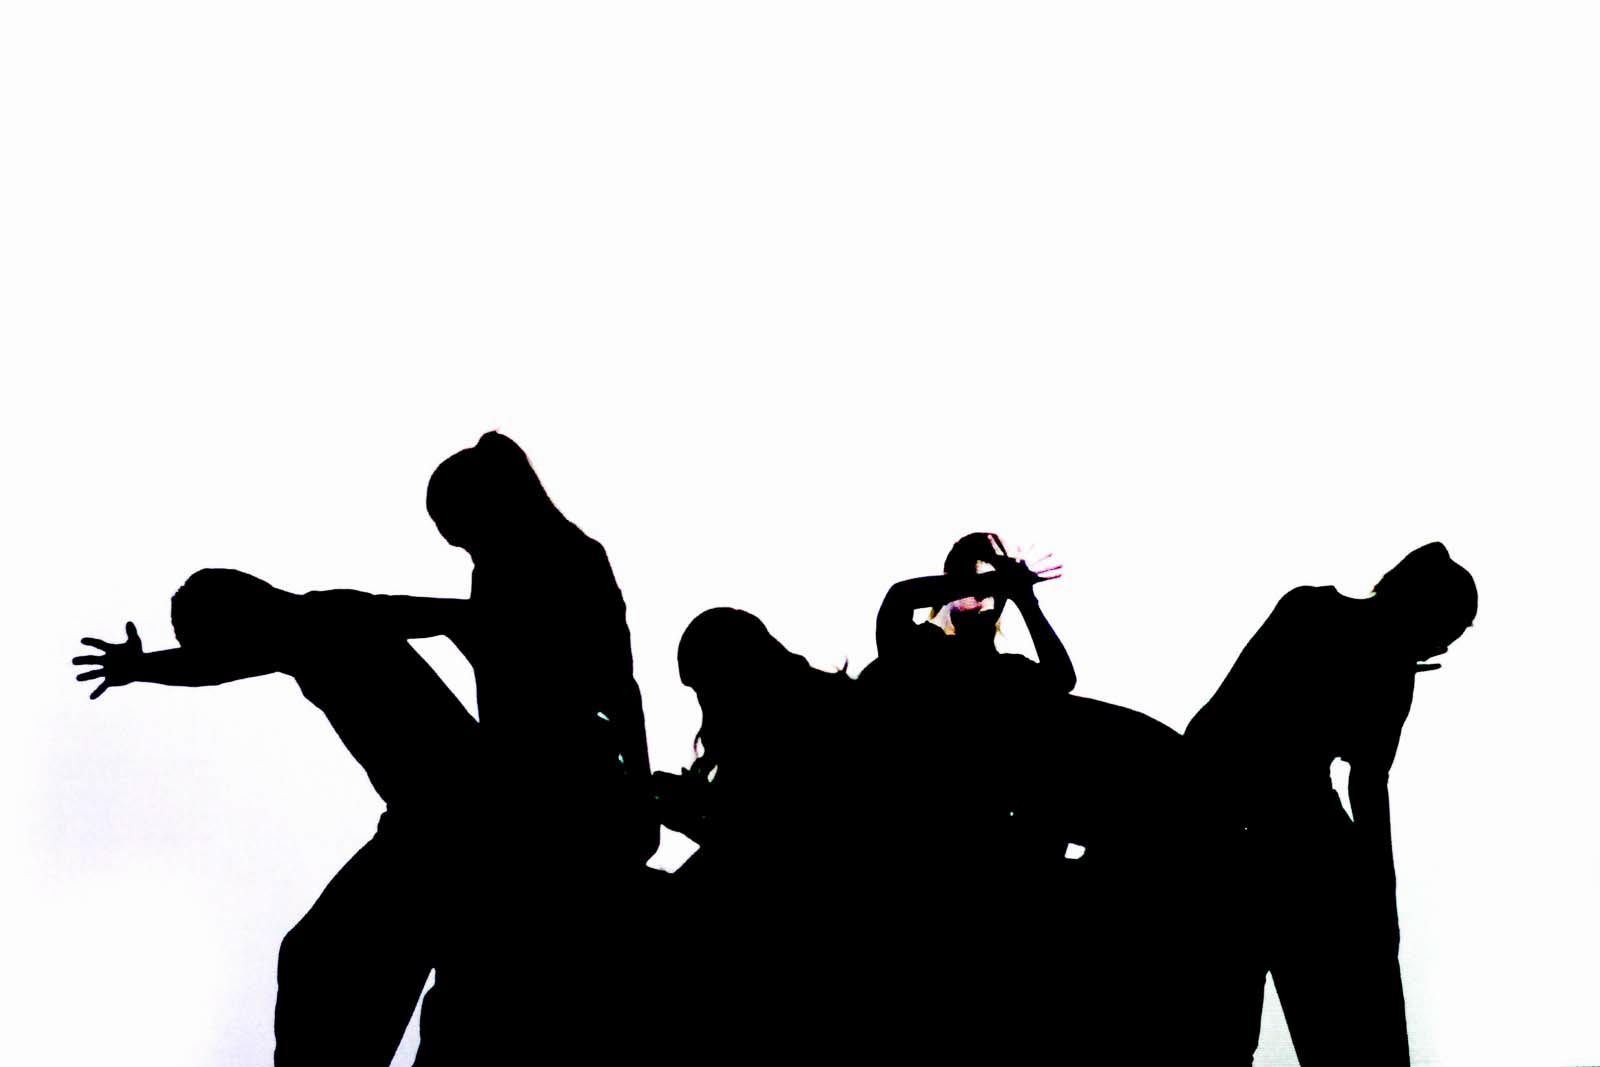 A group of dancers as a silhouette.